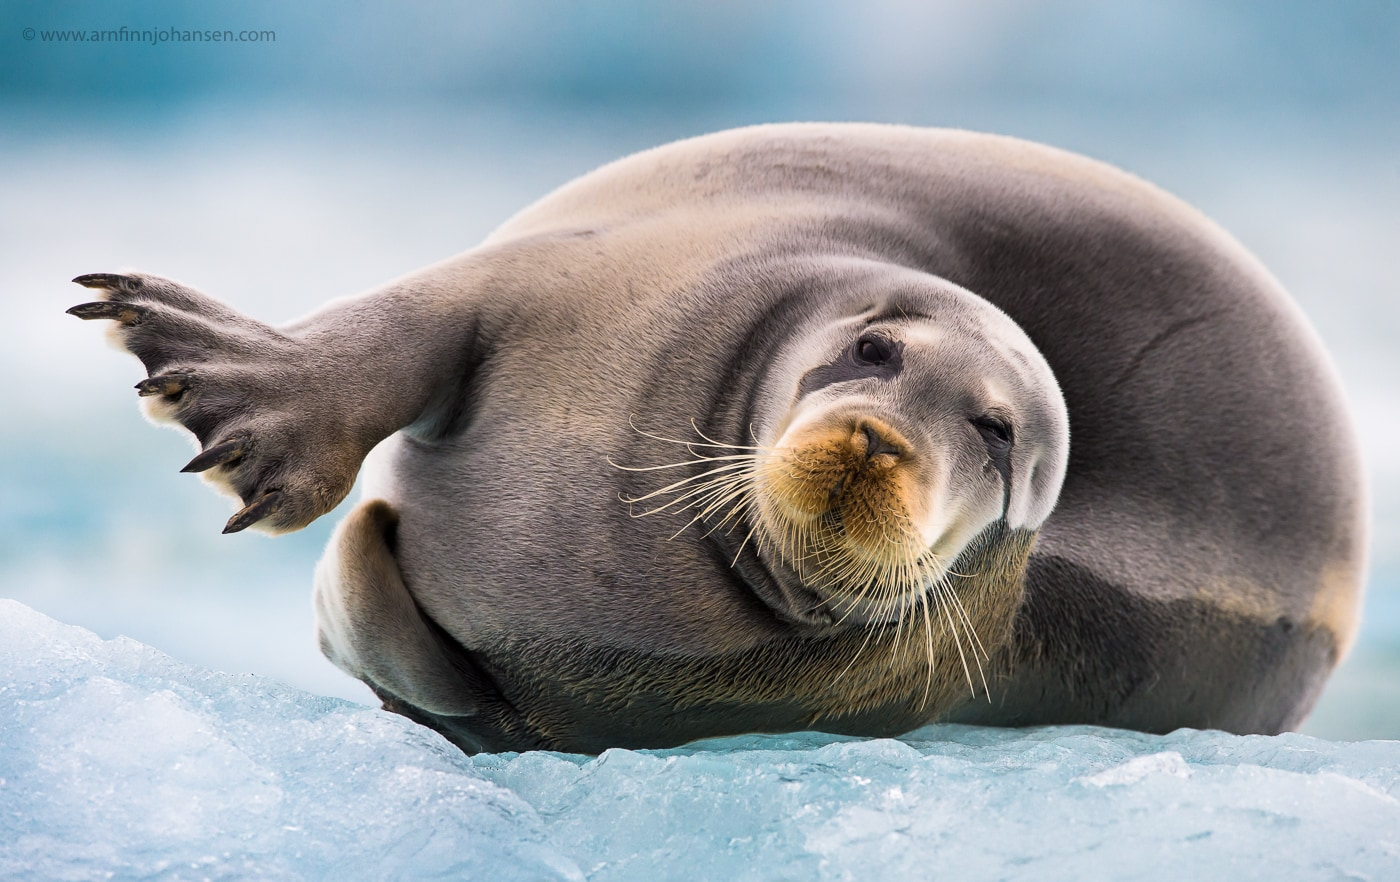 A seal rests on ice in the seas of Svalbard photographed by Arnfinn Johansen